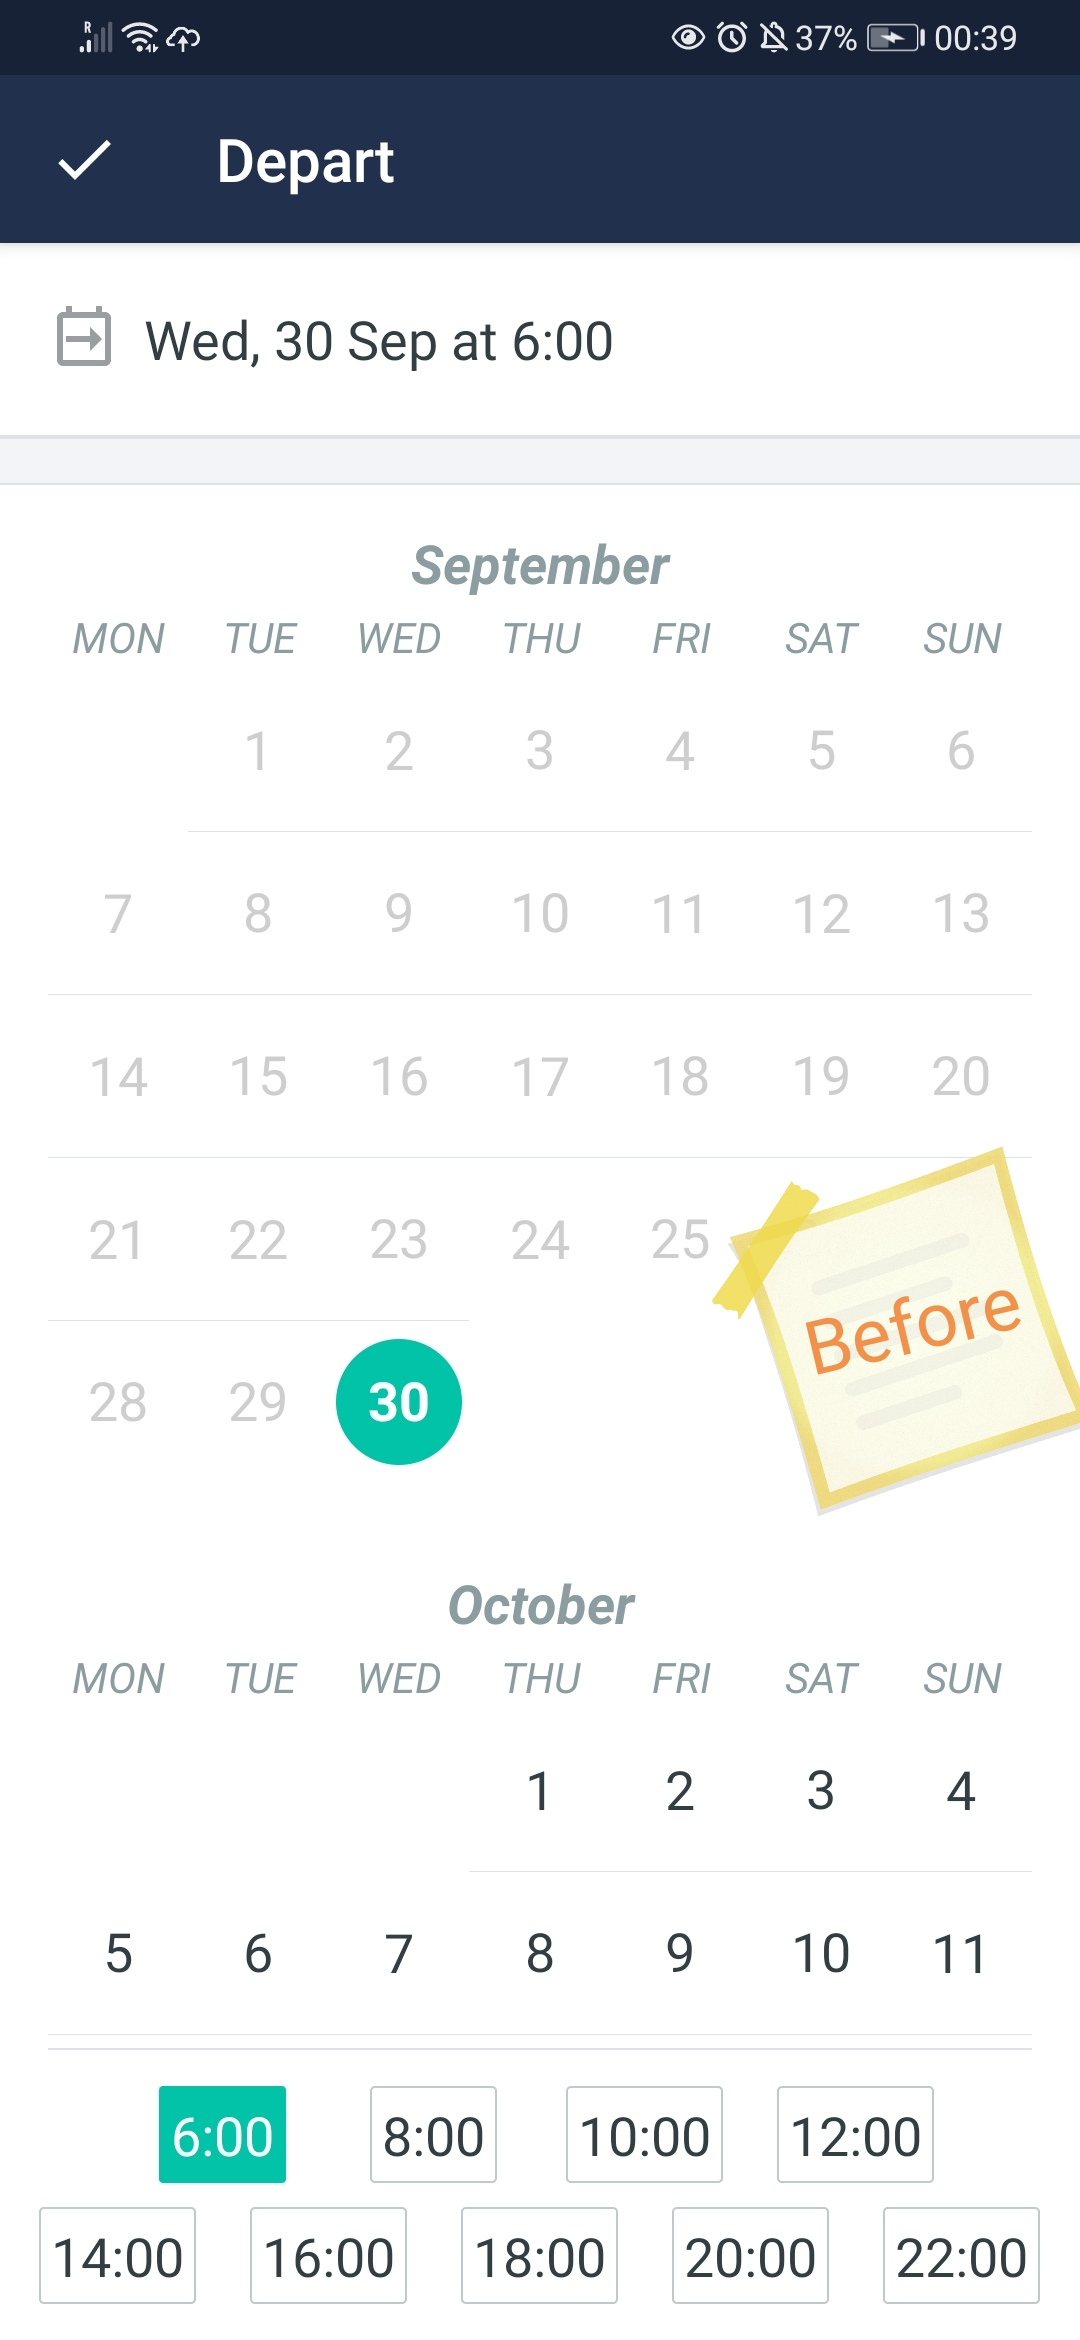 The old date picker for Trainline showing up a full calendar and some slots of hours. Handy.